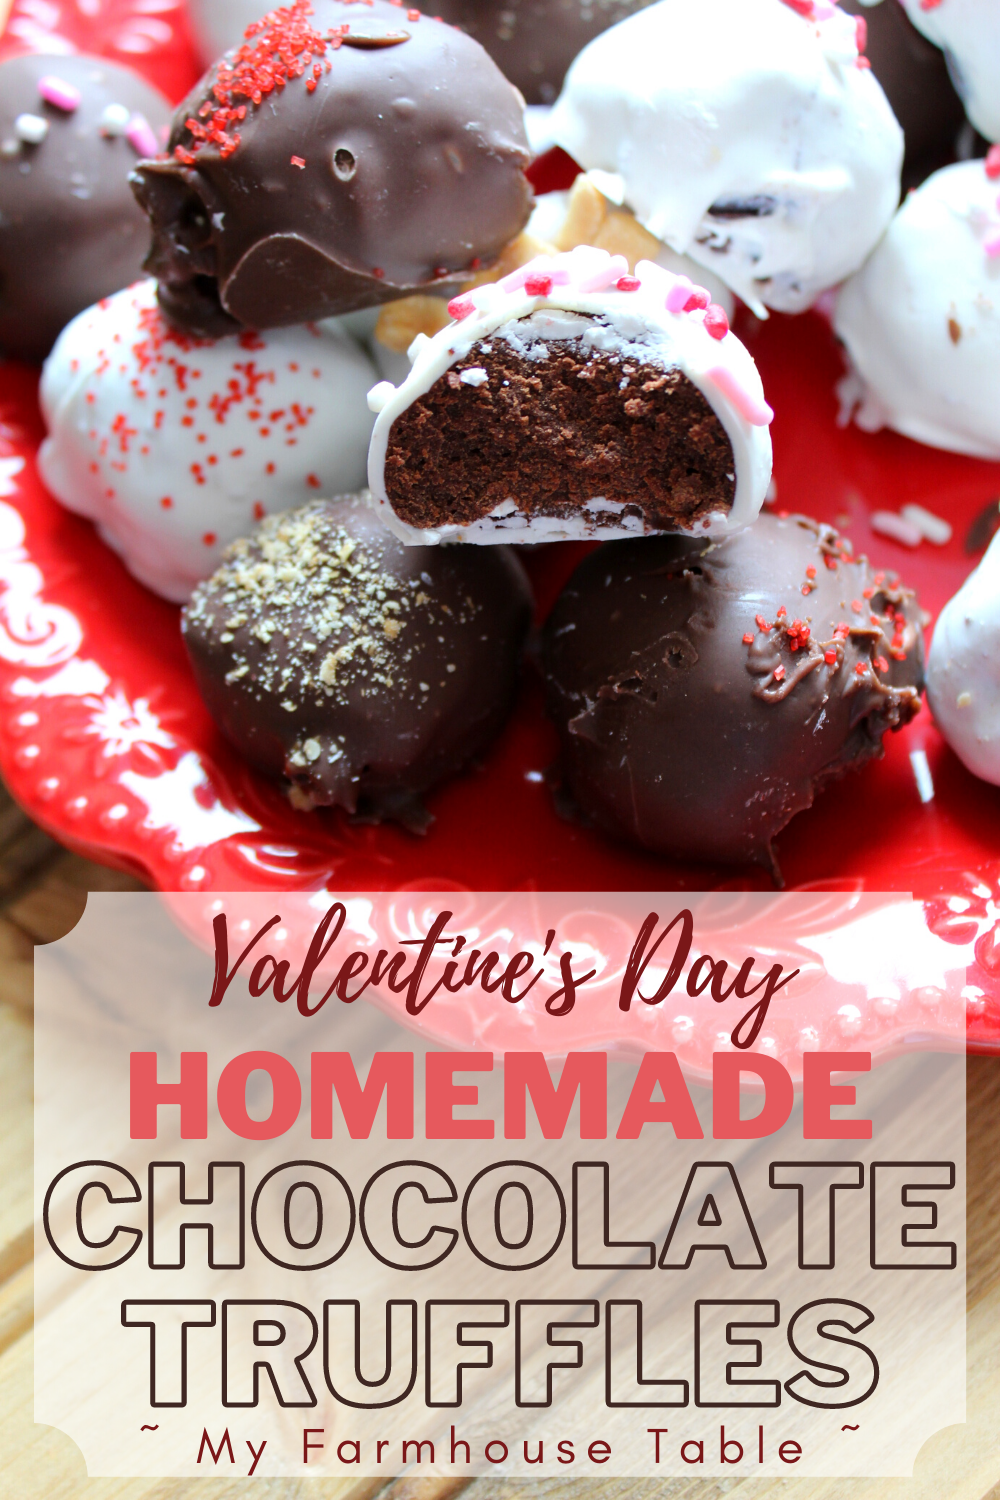 Valentines Day Homemade Chocolate Truffles Simple and Easy Perfect Chocolate Truffles Valentines Homemade Chocolate Dark Chocolate Homemade Valentines Candy Chocolate My Farmhouse Table